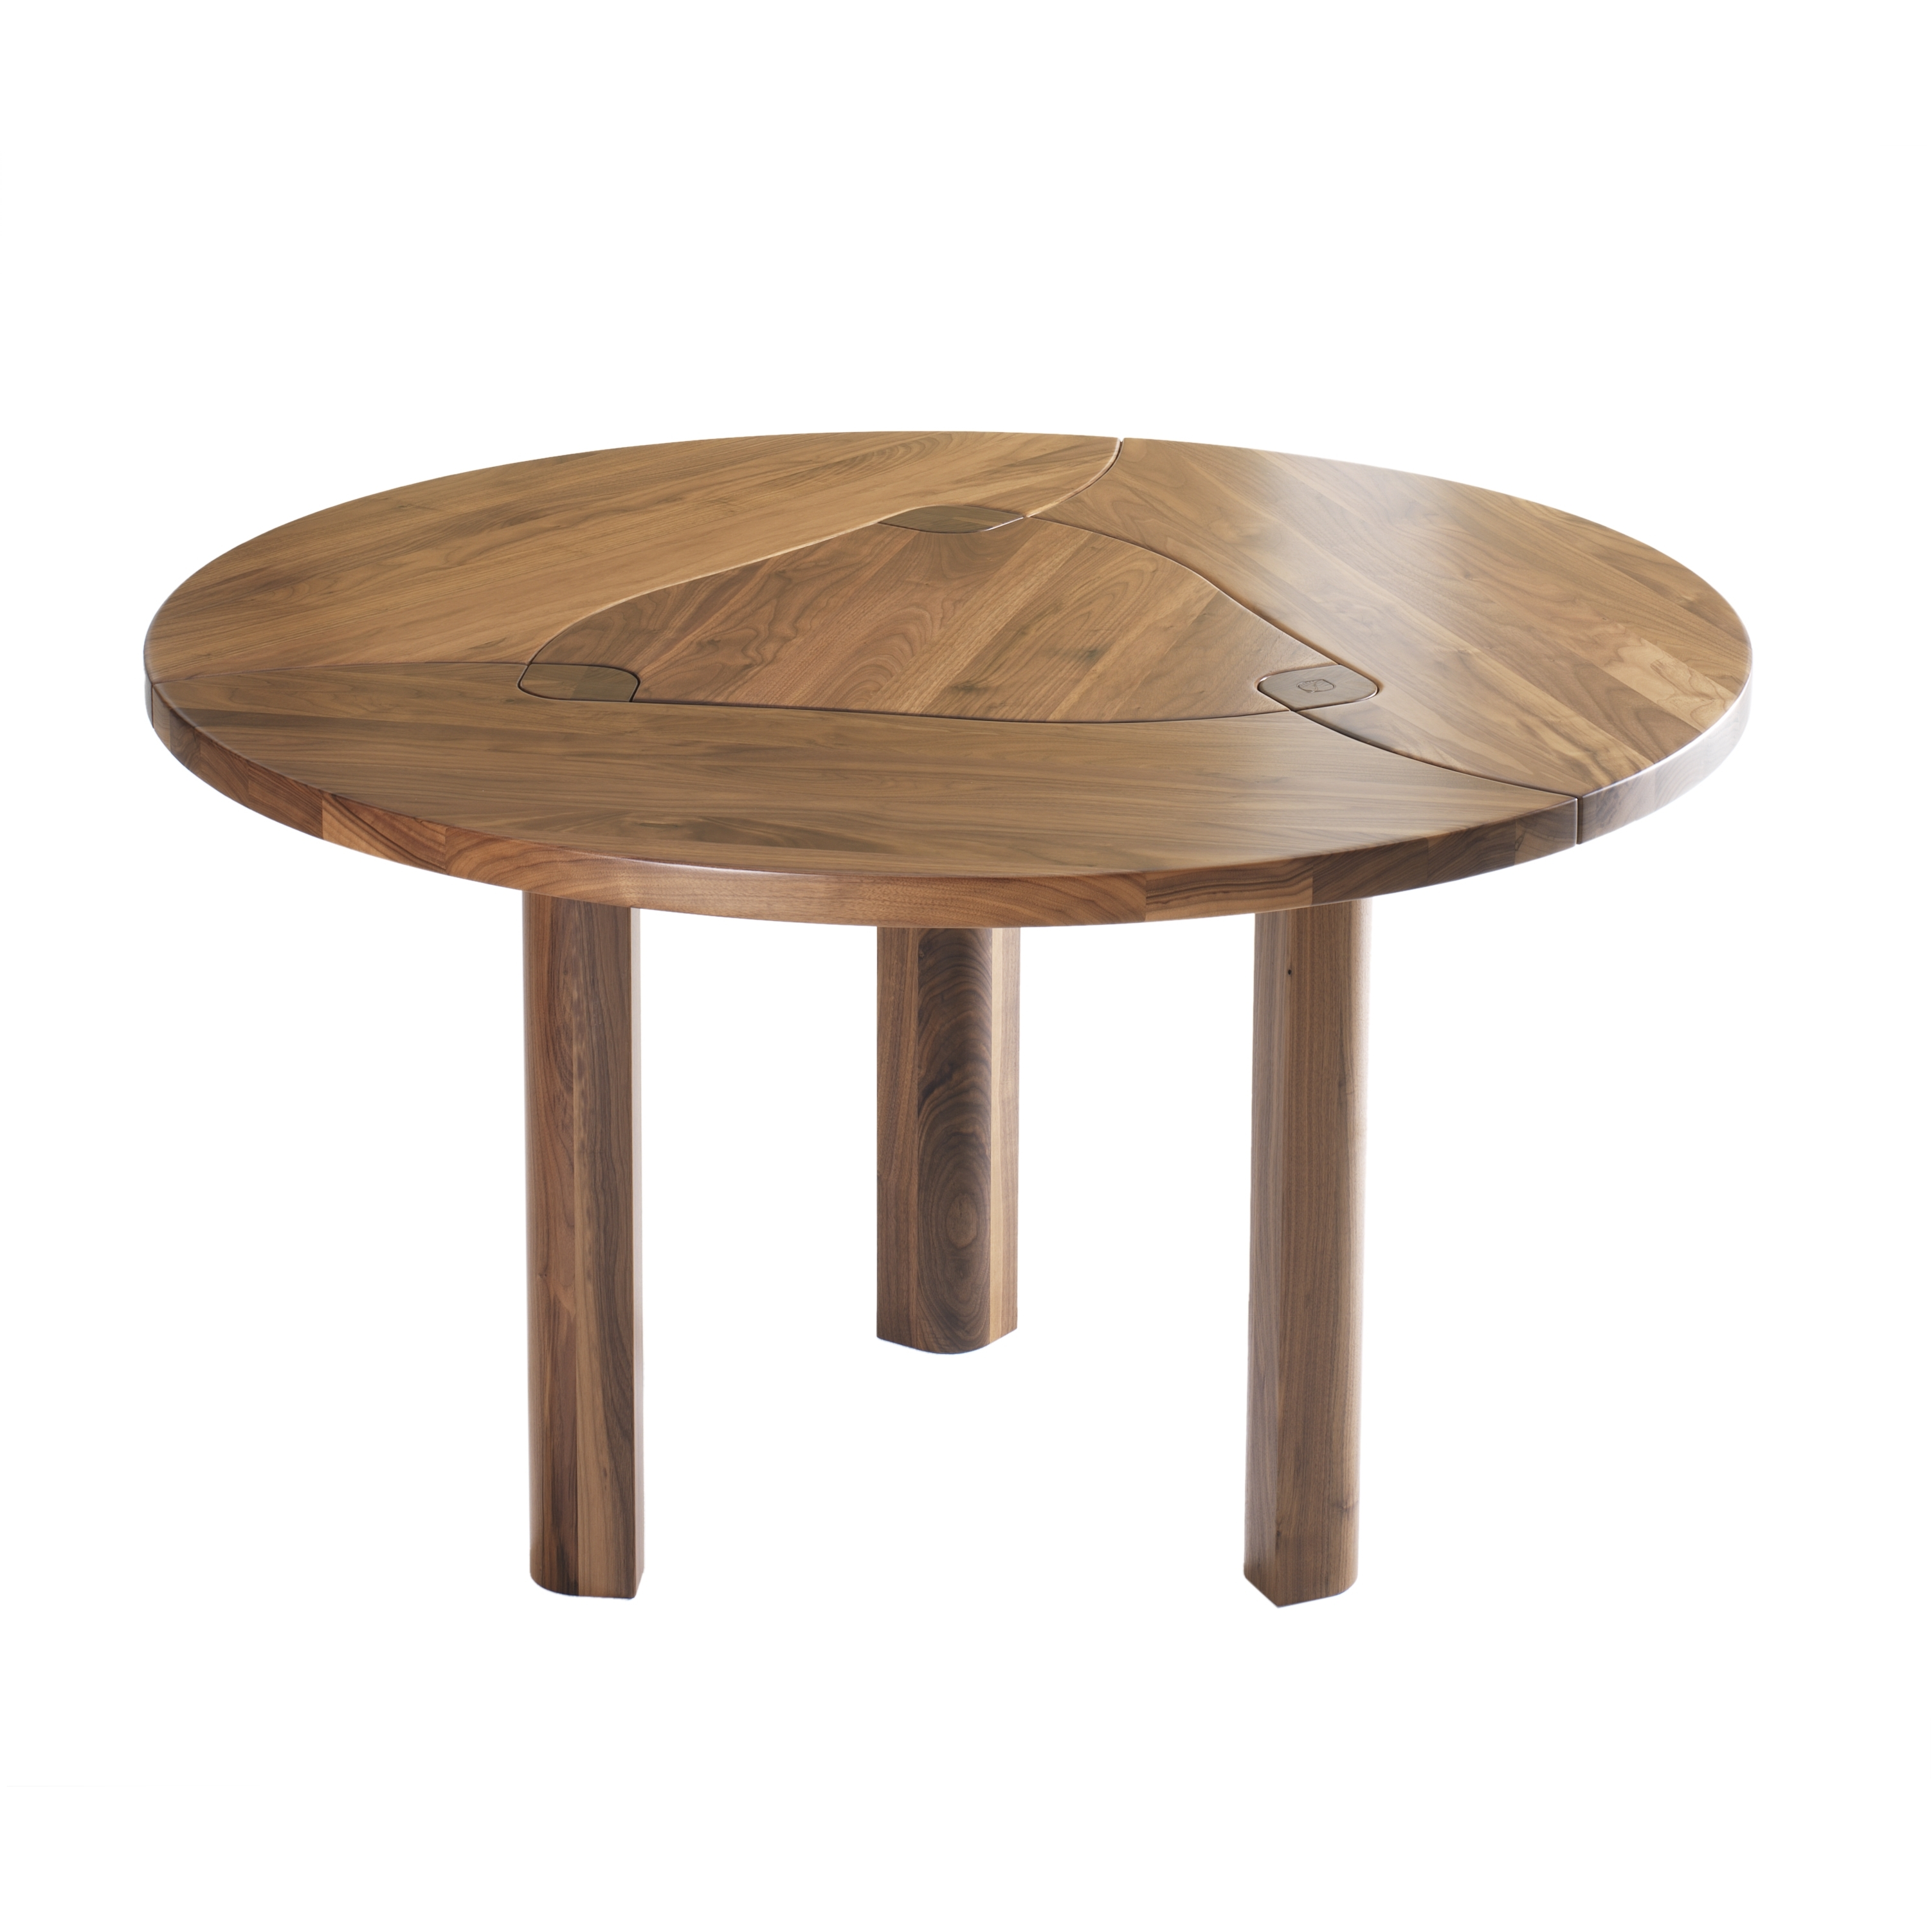 Favorite Round Brown Wooden Dining Table Having Three Cylinder Brown Wooden In Round Acrylic Dining Tables (View 19 of 25)